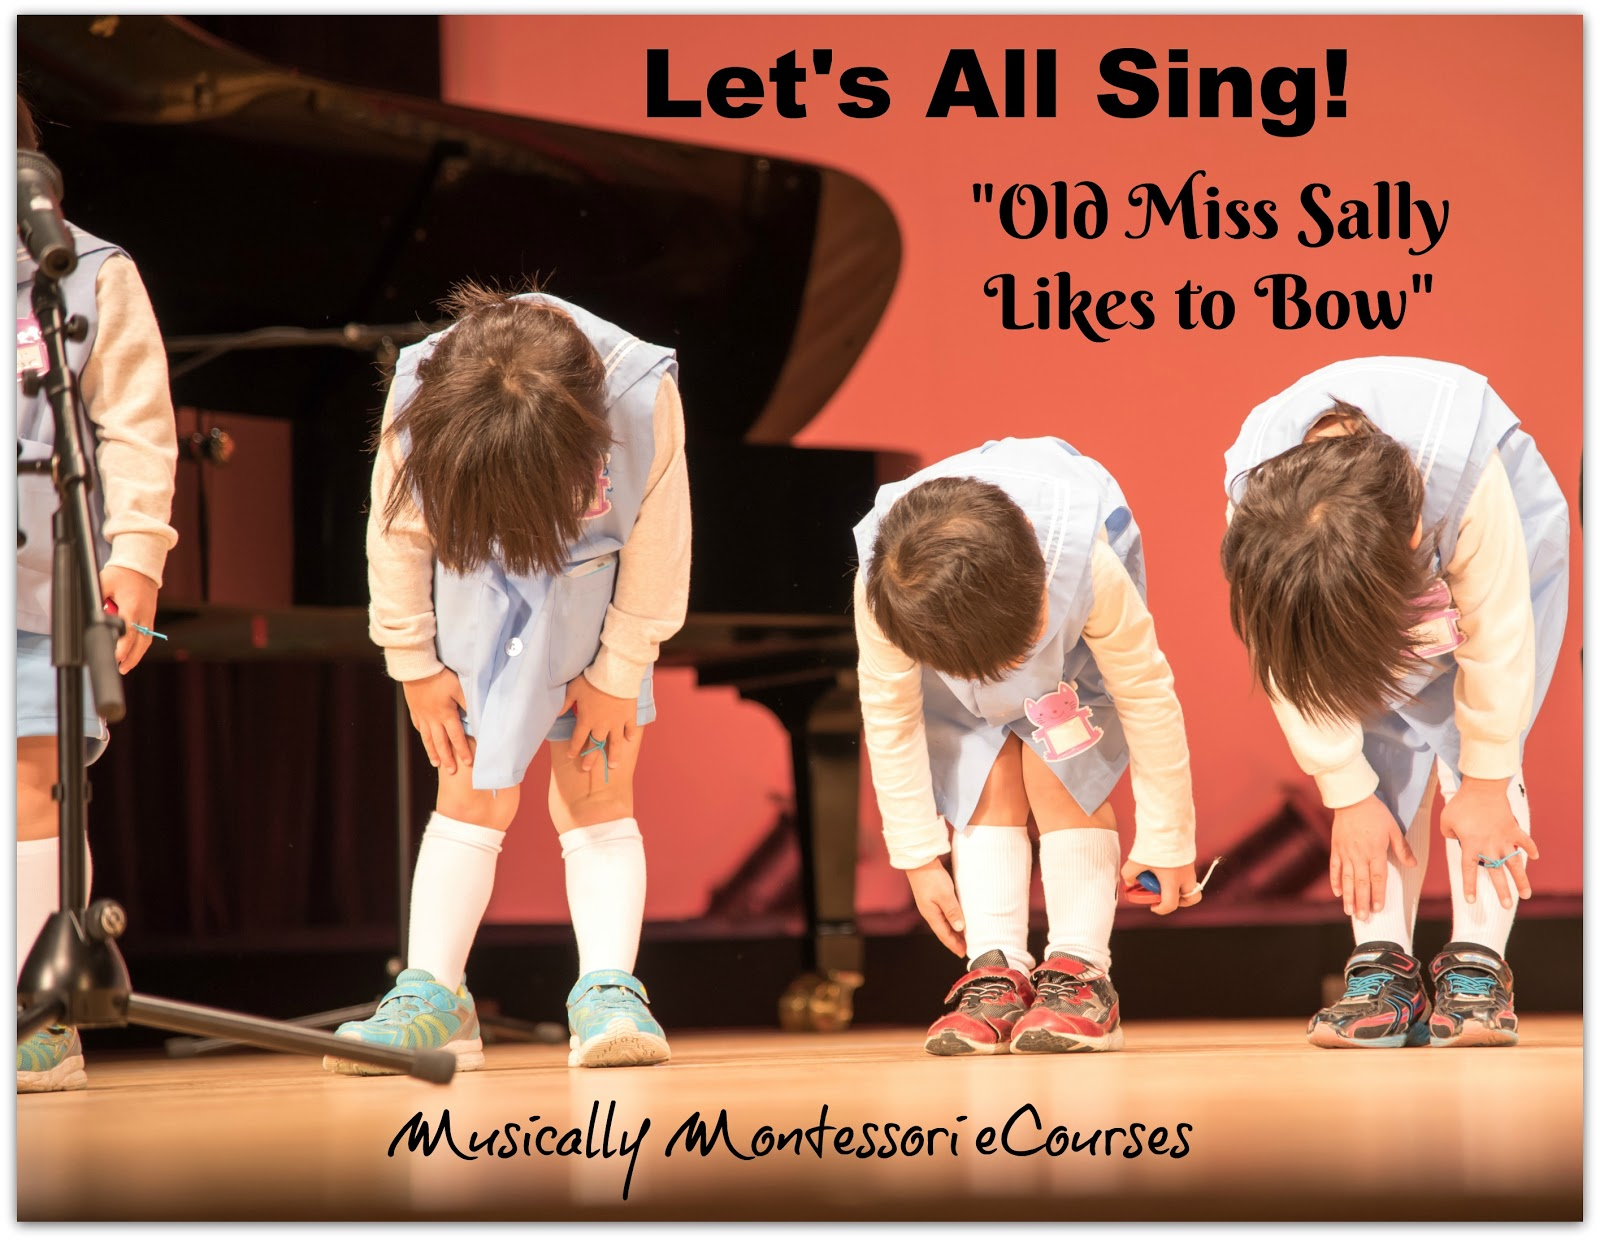 Musically Montessori Let's All Sing